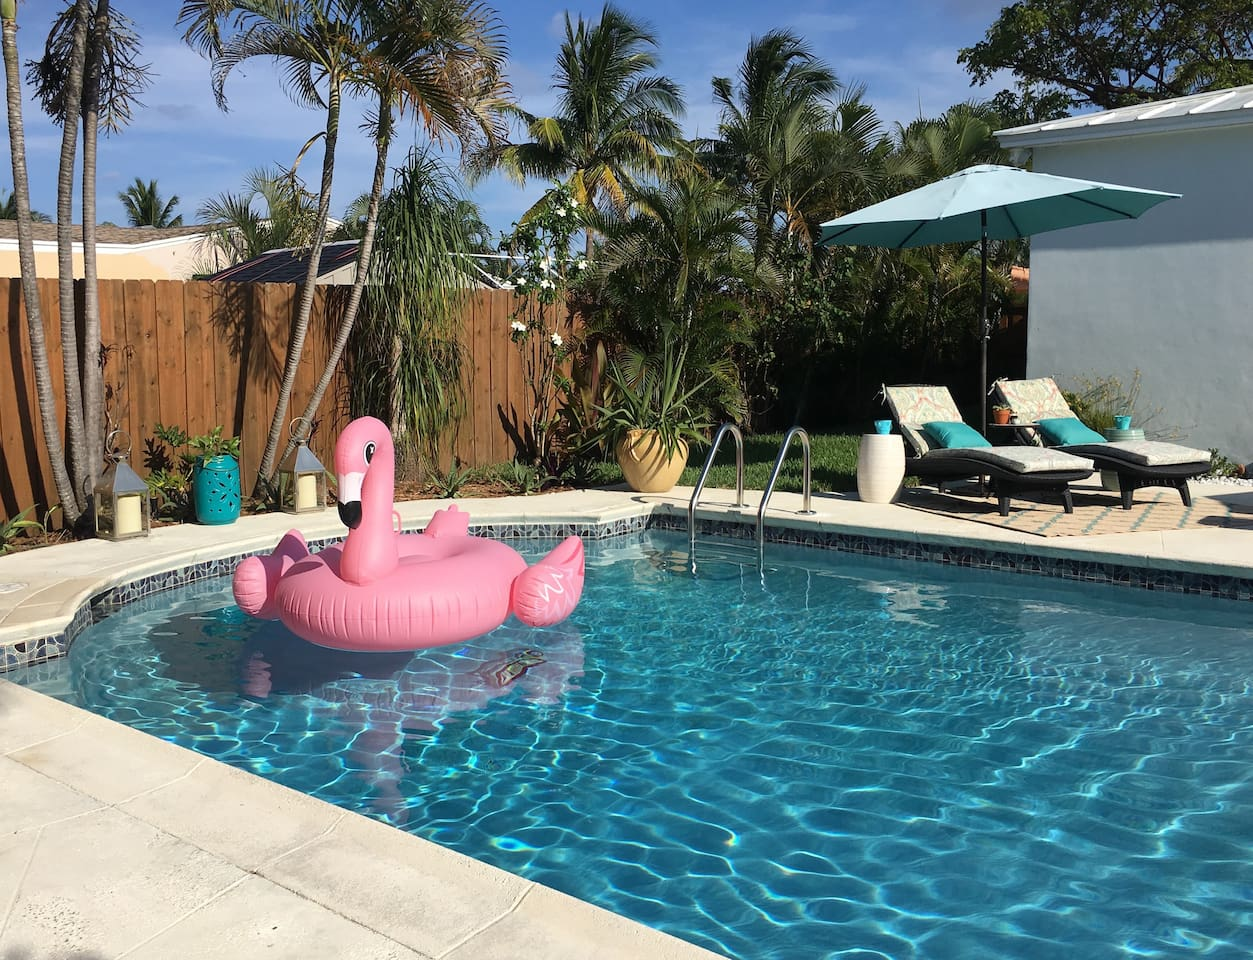 Welcome to paradise and sunny South Florida!  Pool floats and inflatables provided.